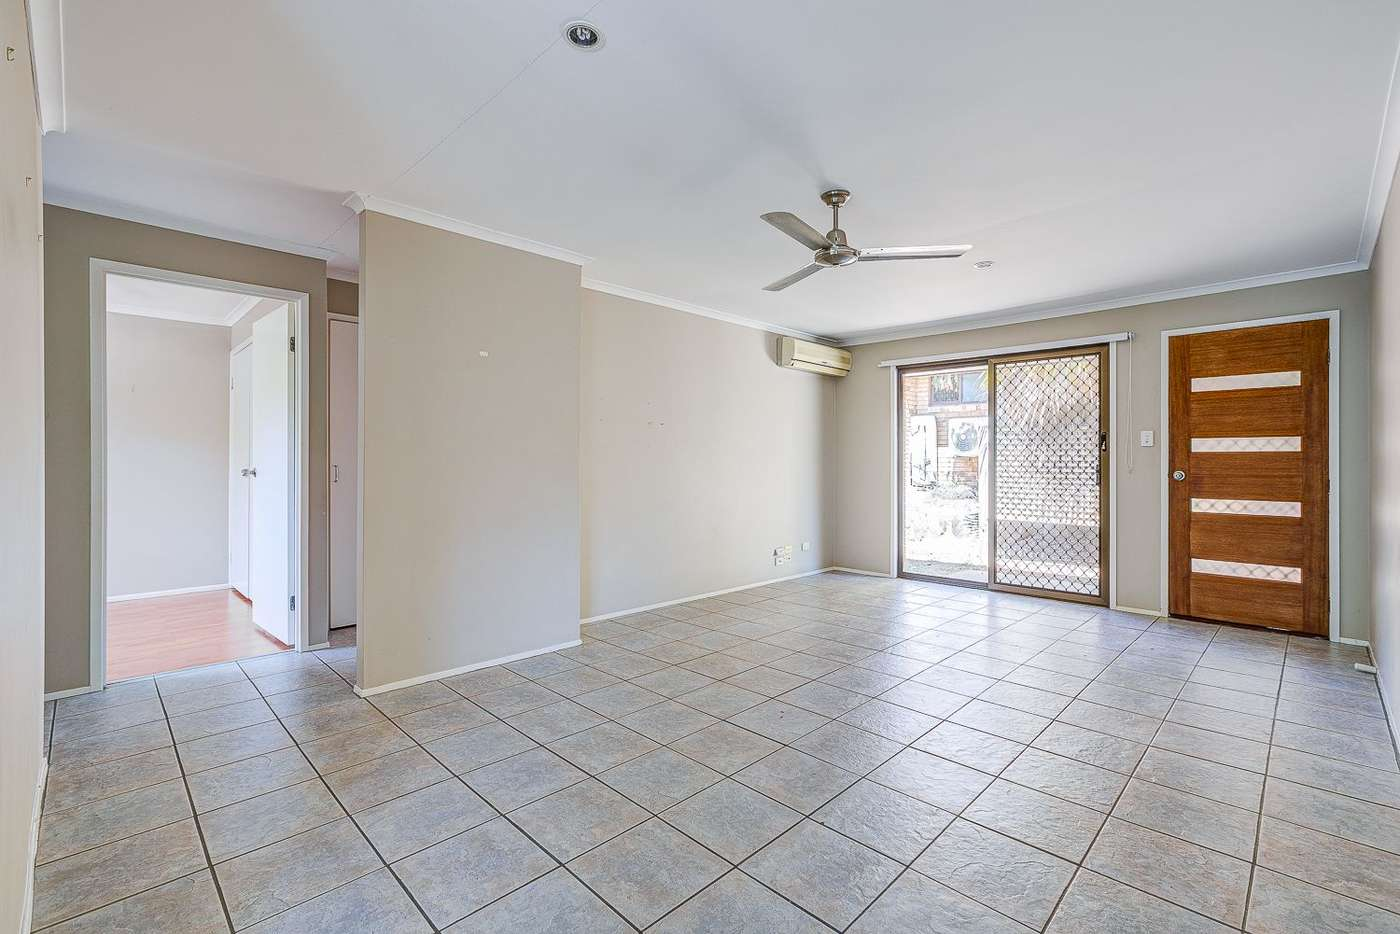 Seventh view of Homely house listing, 6/54 Dorset Drive, Rochedale South QLD 4123